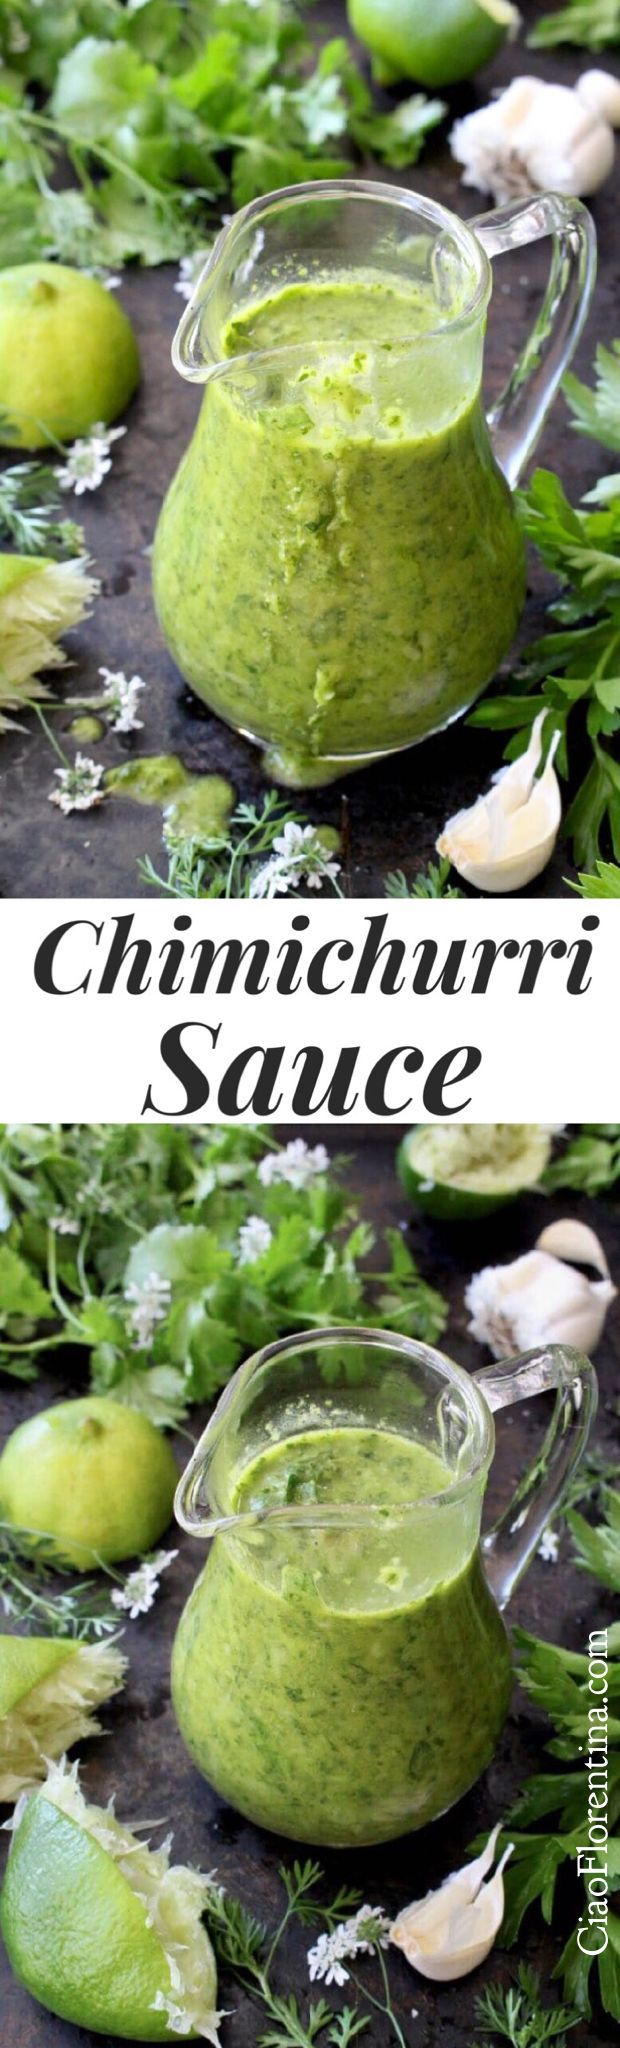 The Best Chimichurri Sauce of all times to drizzles over chicken, steak or roasted sweet potato fries. Parsley + Cilantro + Garlic ✅ | CiaoFlorentina.com @CiaoFlorentina